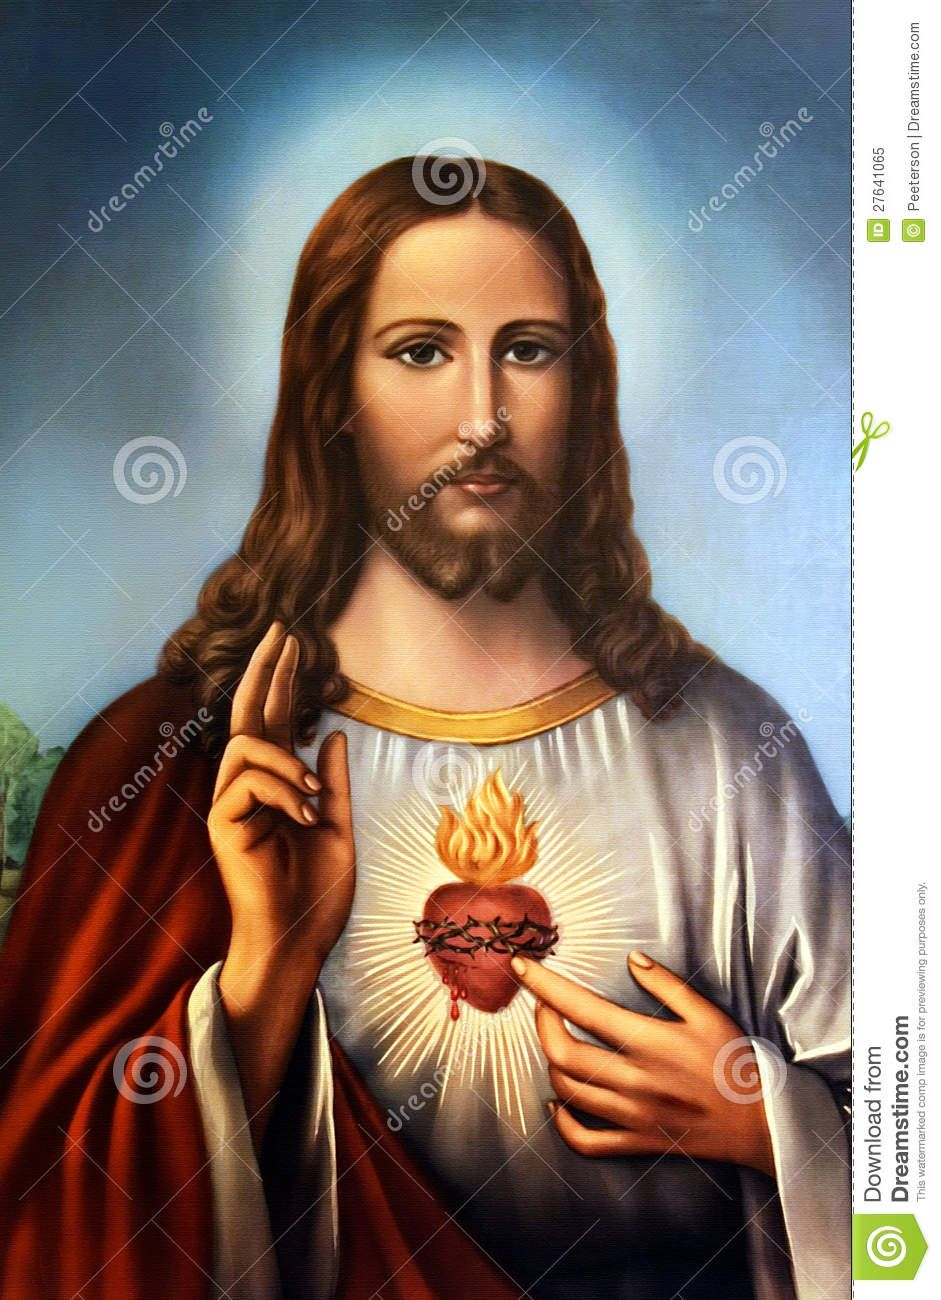 Jesus Christ Download From Over 54 Million High Quality Stock Photos Images Vectors Sign Up For Free Today Heart Of Jesus Jesus Wallpaper Jesus Pictures